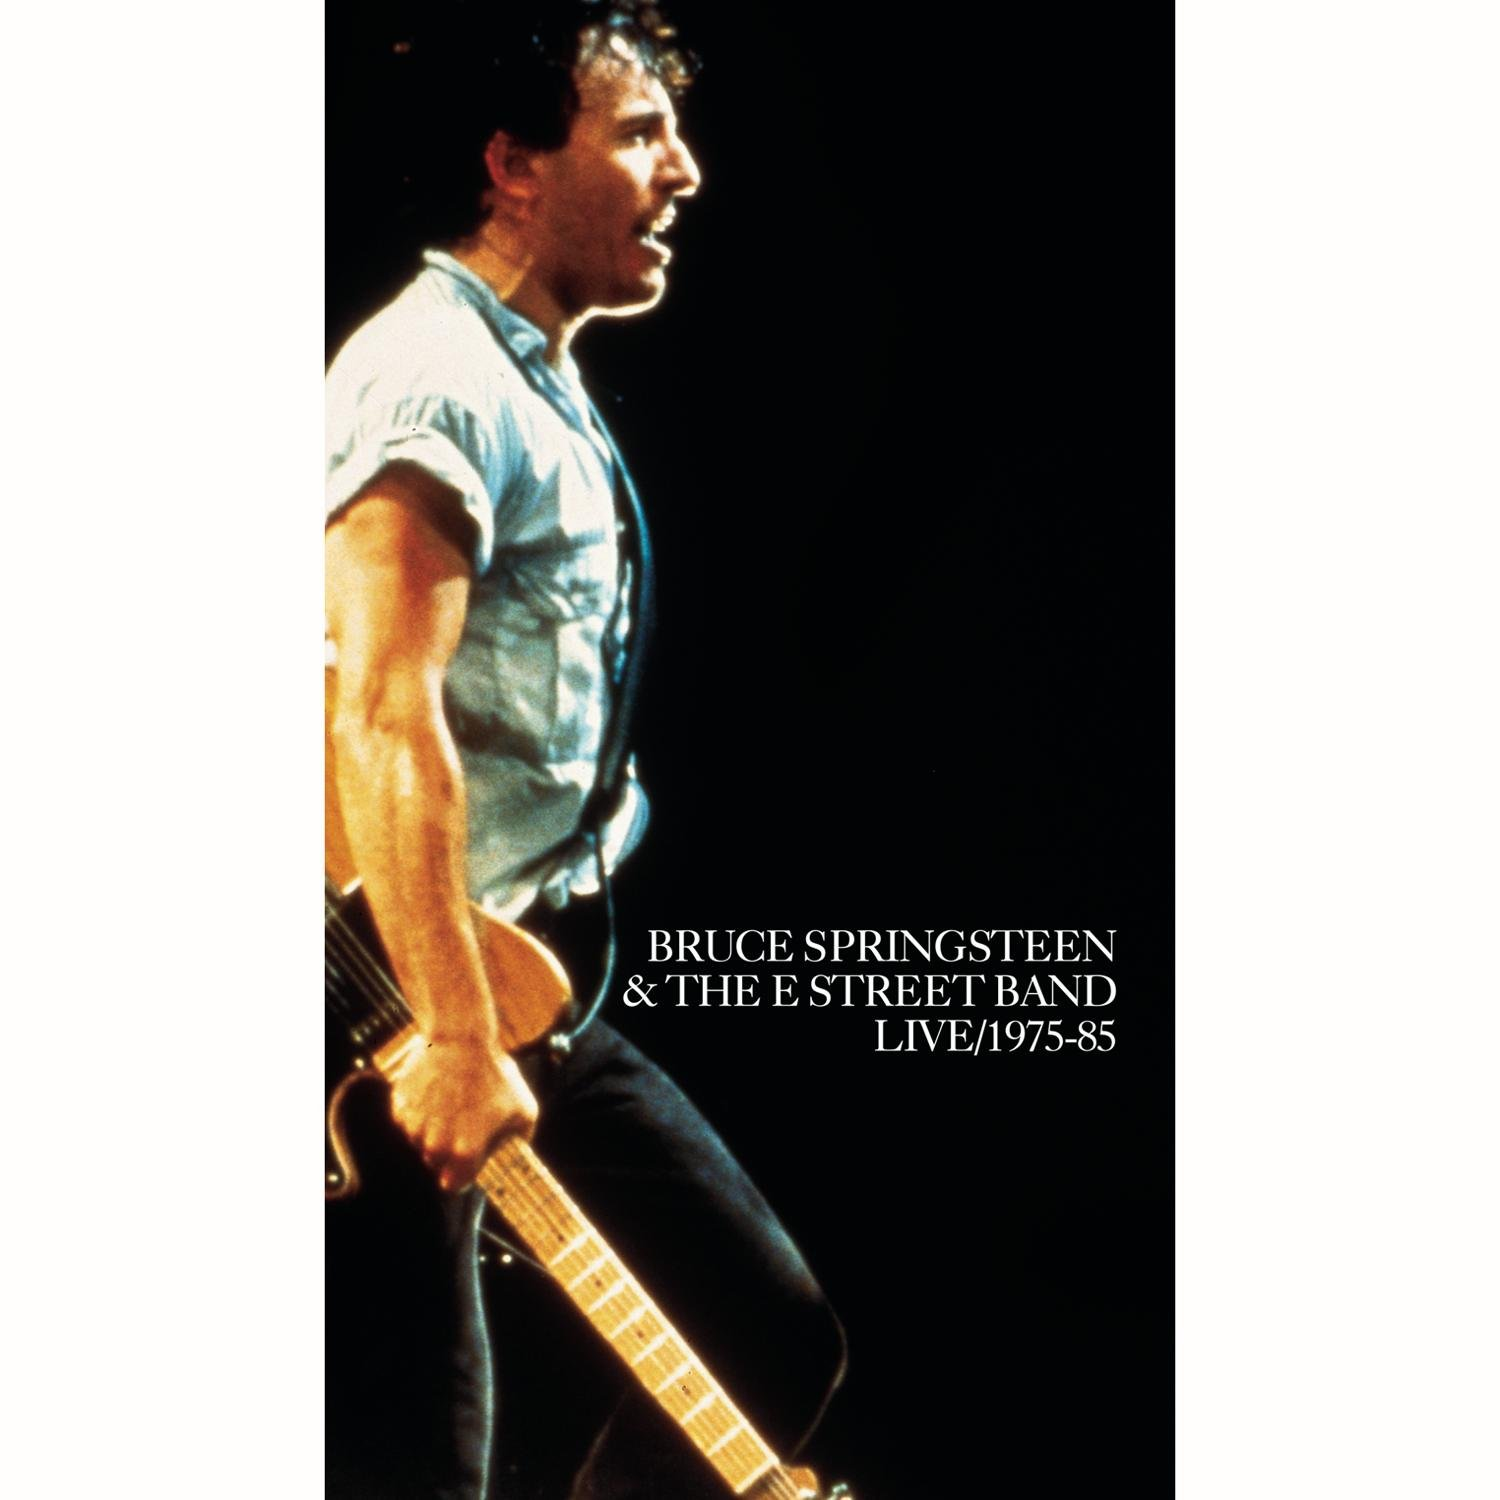 Bruce Springsteen & The E Street Band: Live 1975-1985